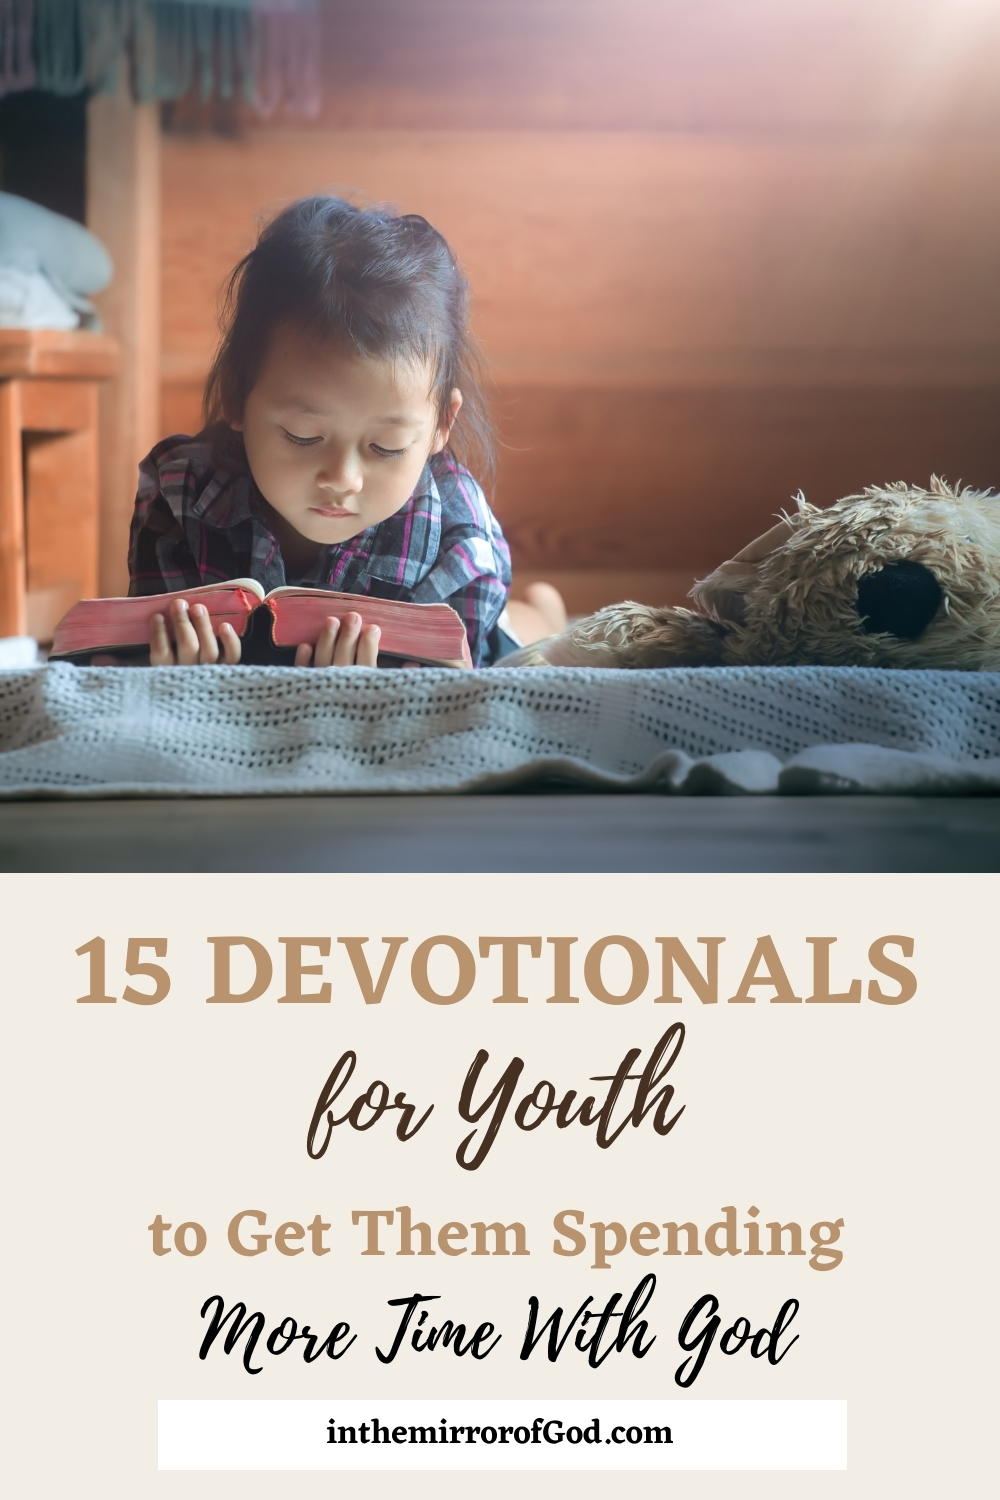 15 Amazing Devotionals for Youth to Get Them Spending Time With God